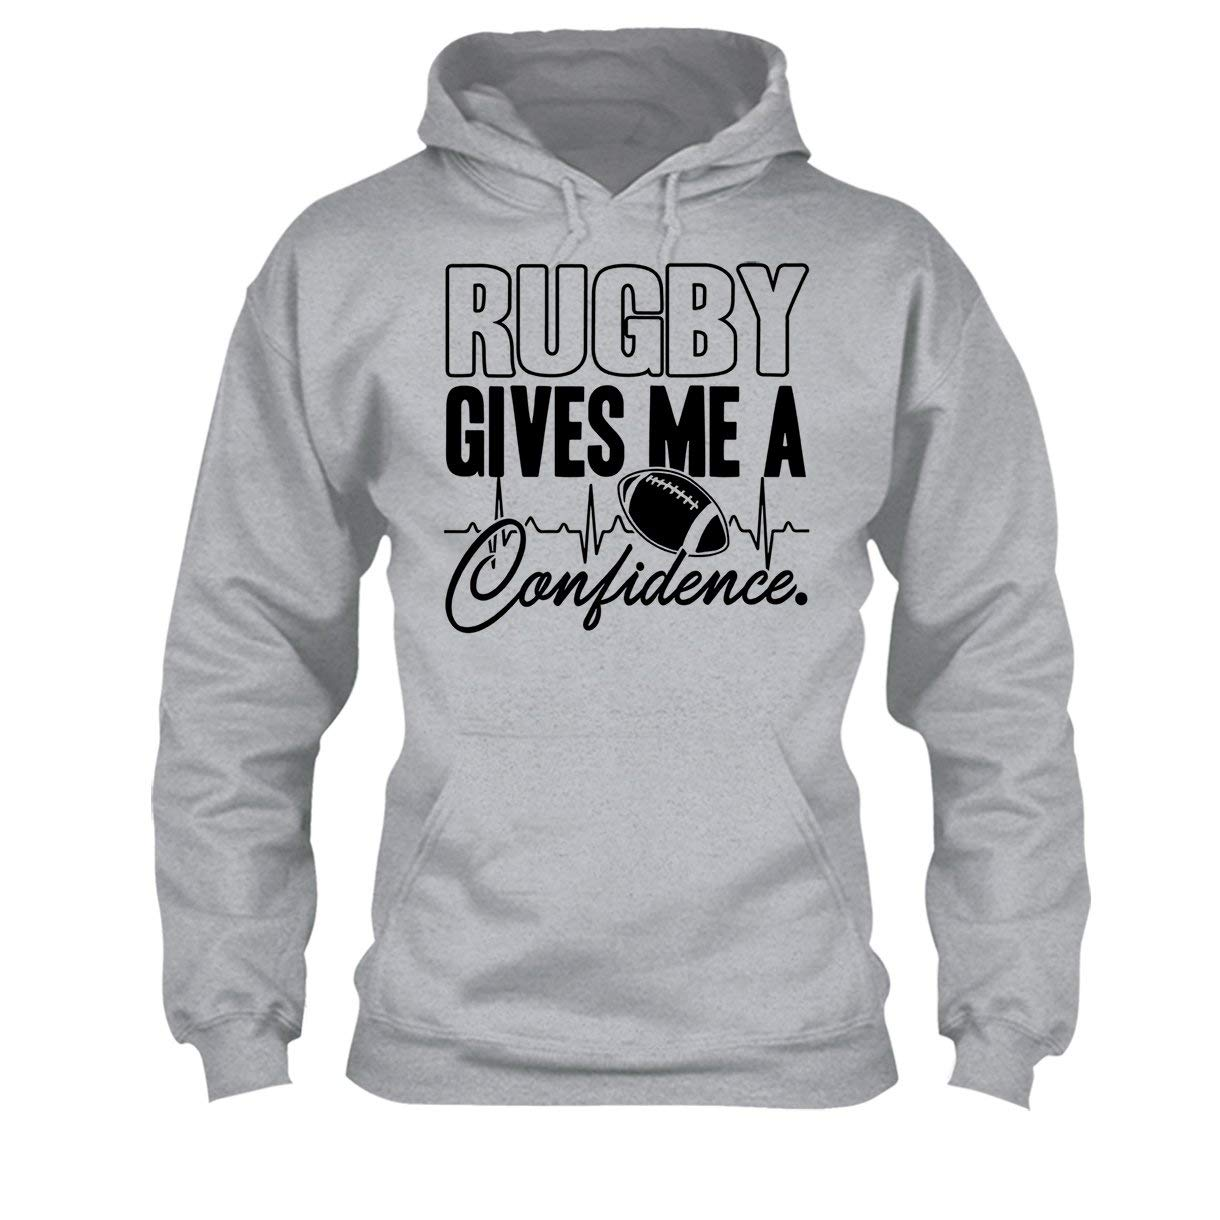 Cool Sweatshirt Hoodie Rugby Give Me A Confidence Tee Shirt